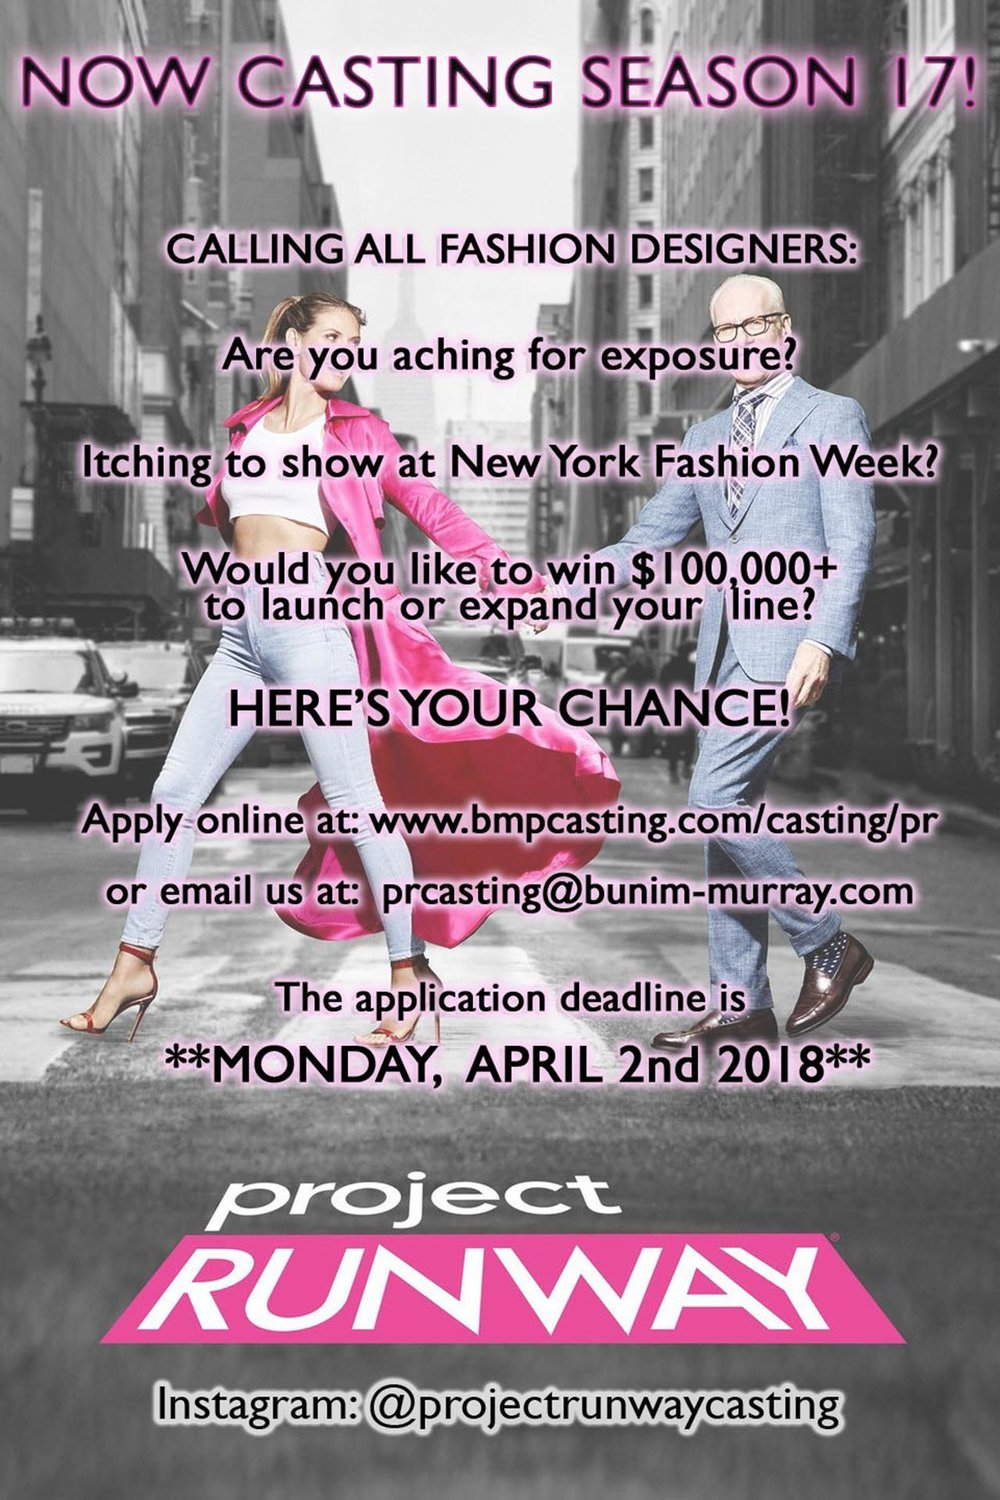 Project Runway Season 17 Casting Now